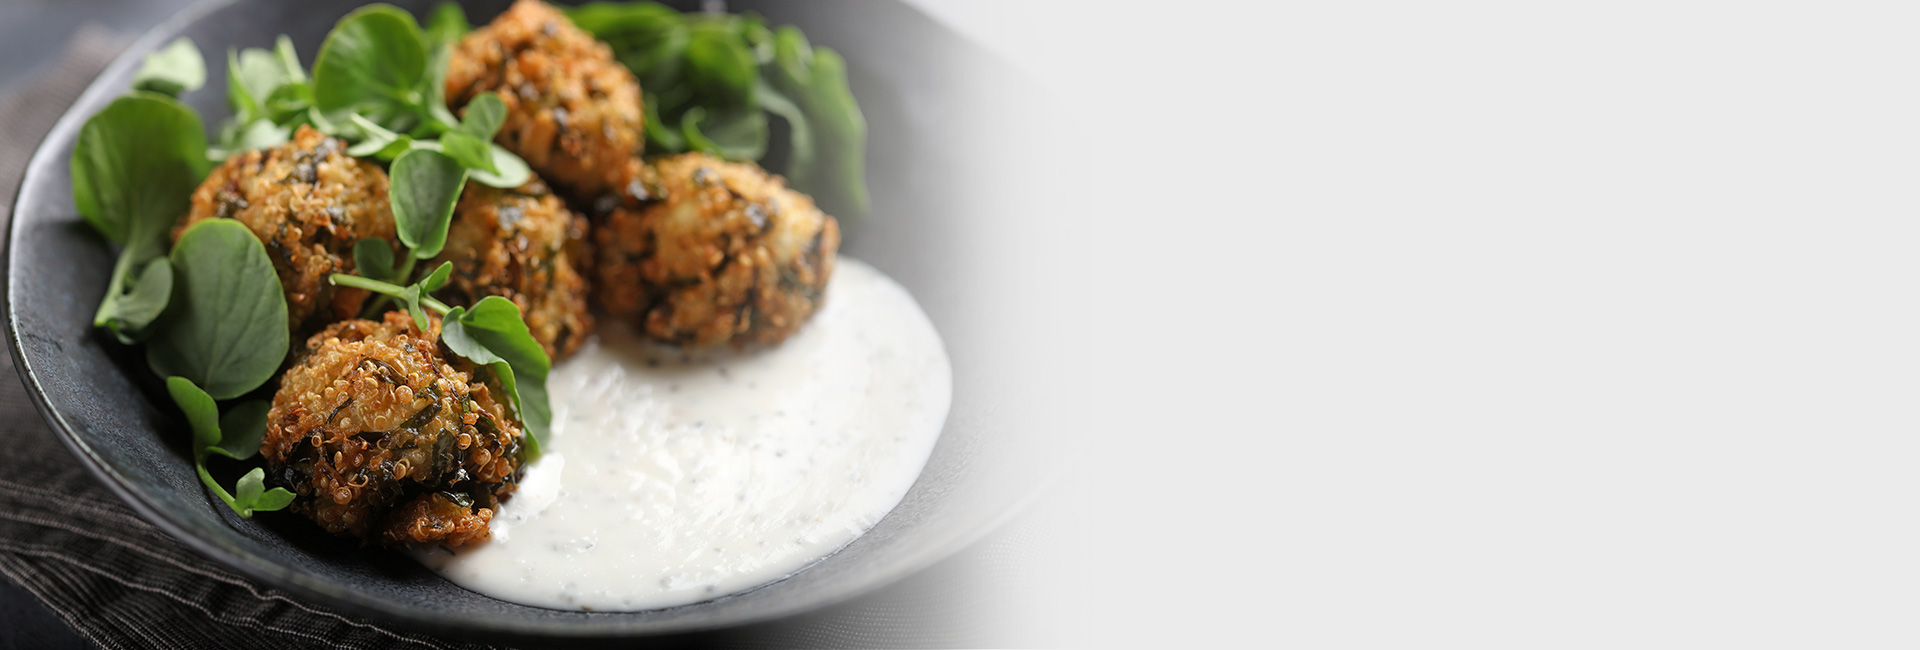 Fried falafel on a gray plate amidst various greens and a dollop of white sauce.